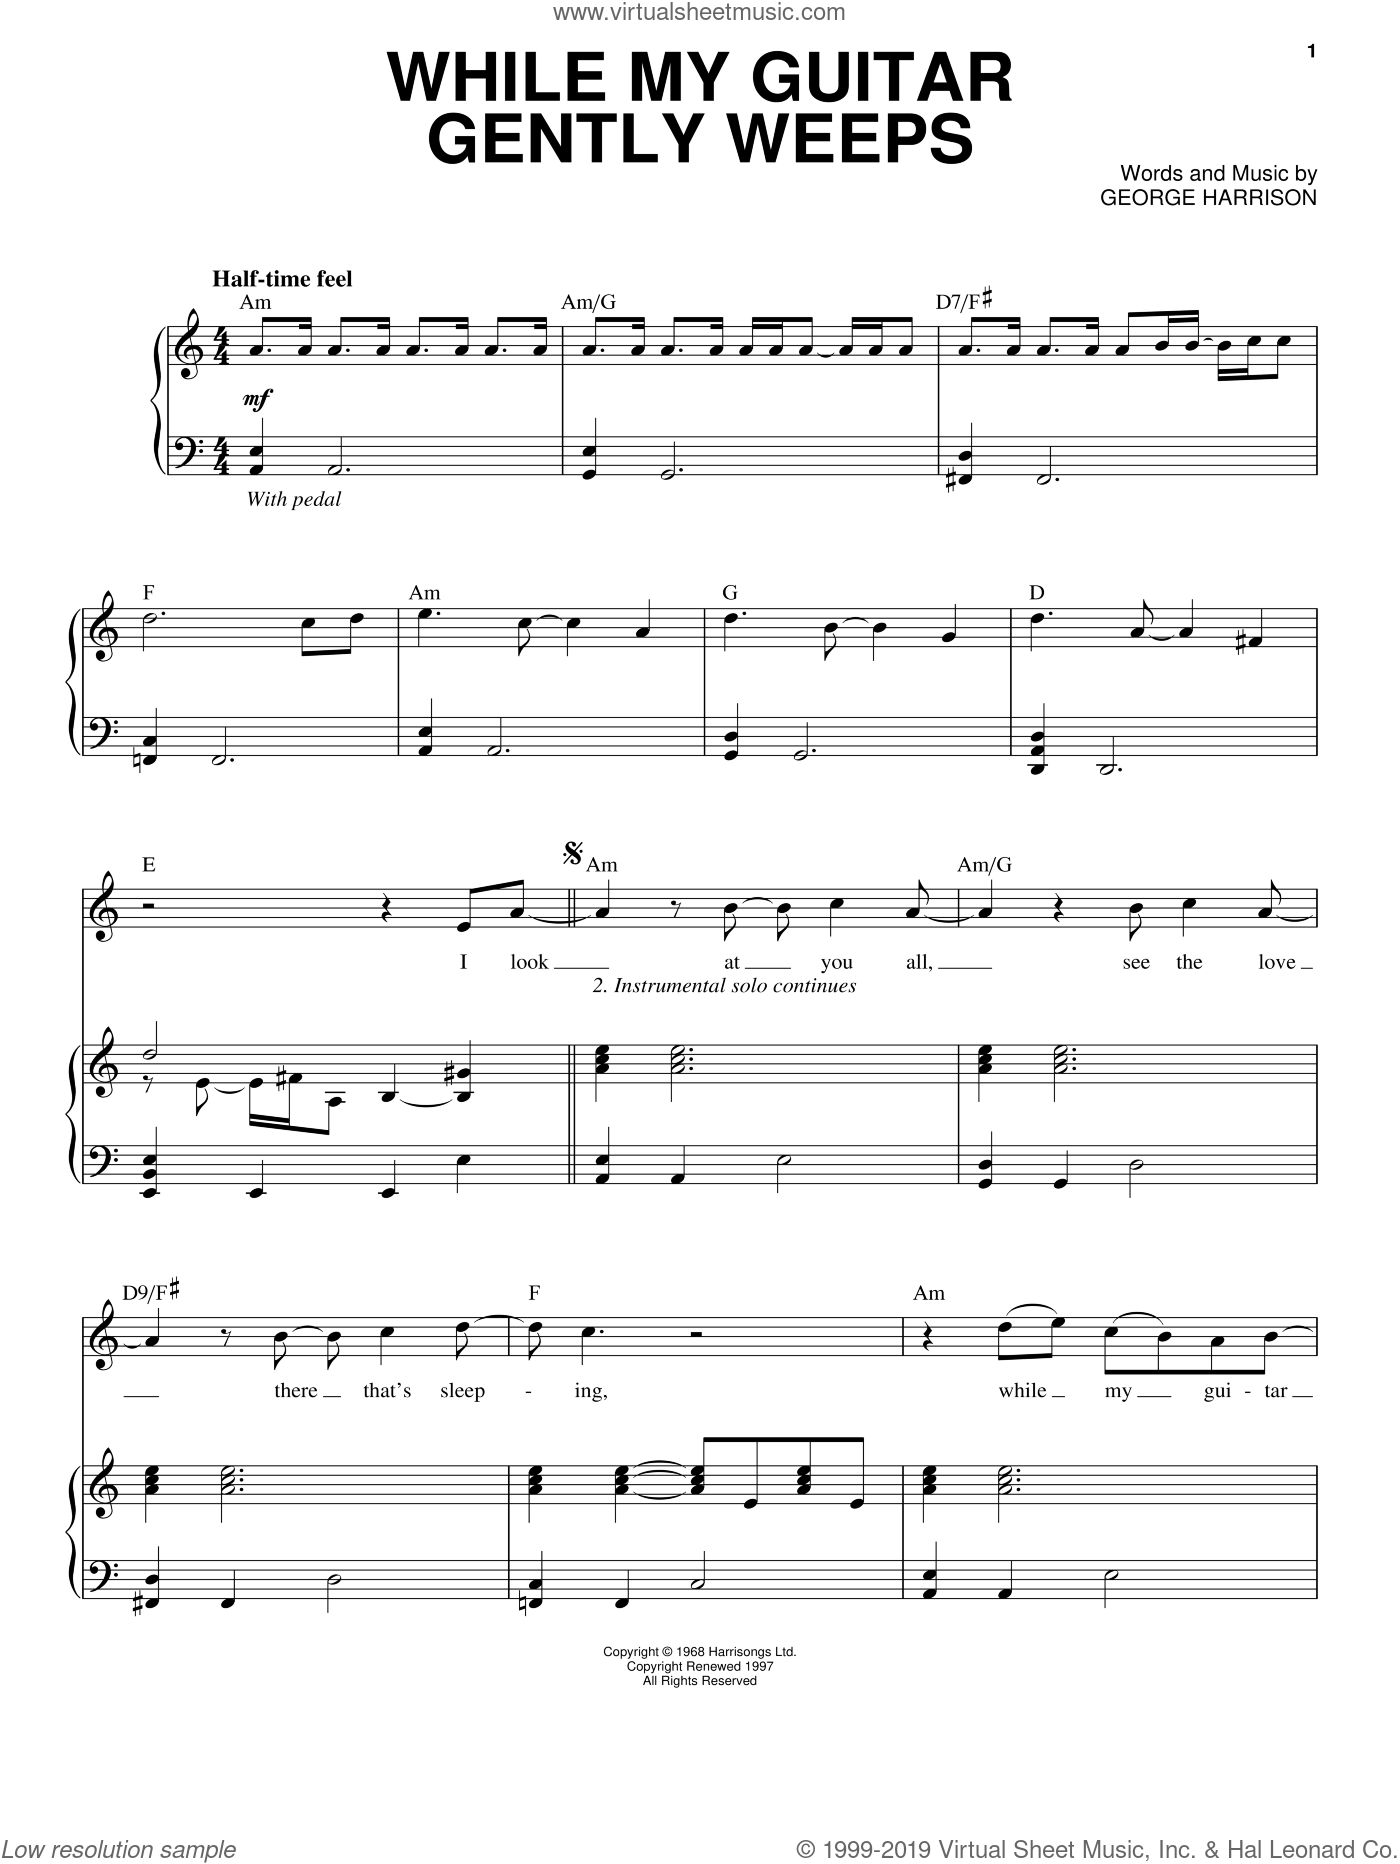 Beatles - While My Guitar Gently Weeps sheet music for voice and piano